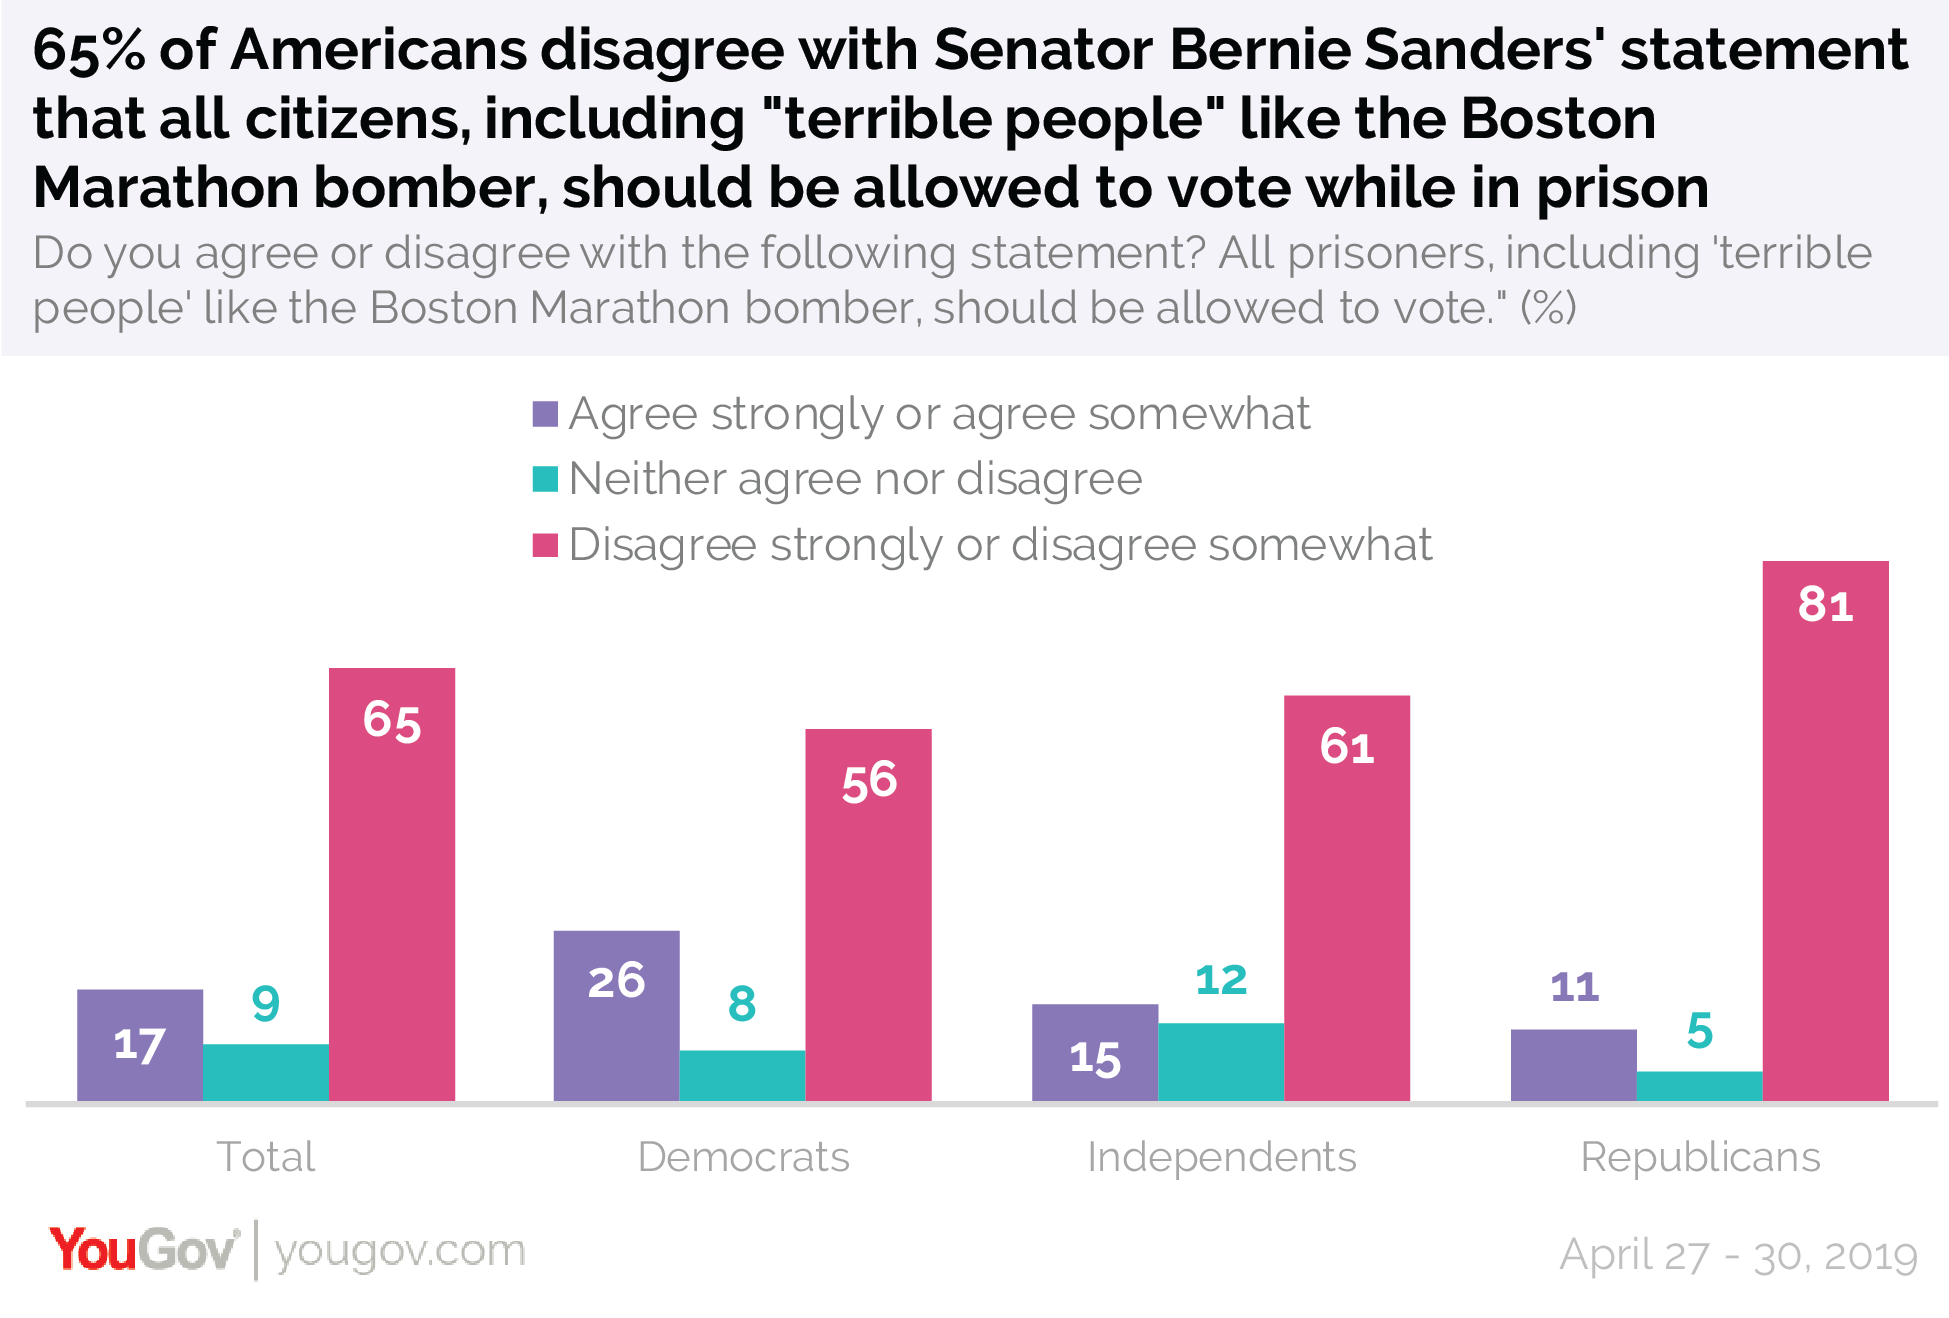 "65% of Americans disagree with Senator Bernie Sanders' statement that all citizens, including ""terrible people"" like the Boston Marathon bomber, should be allowed to vote while in prison"